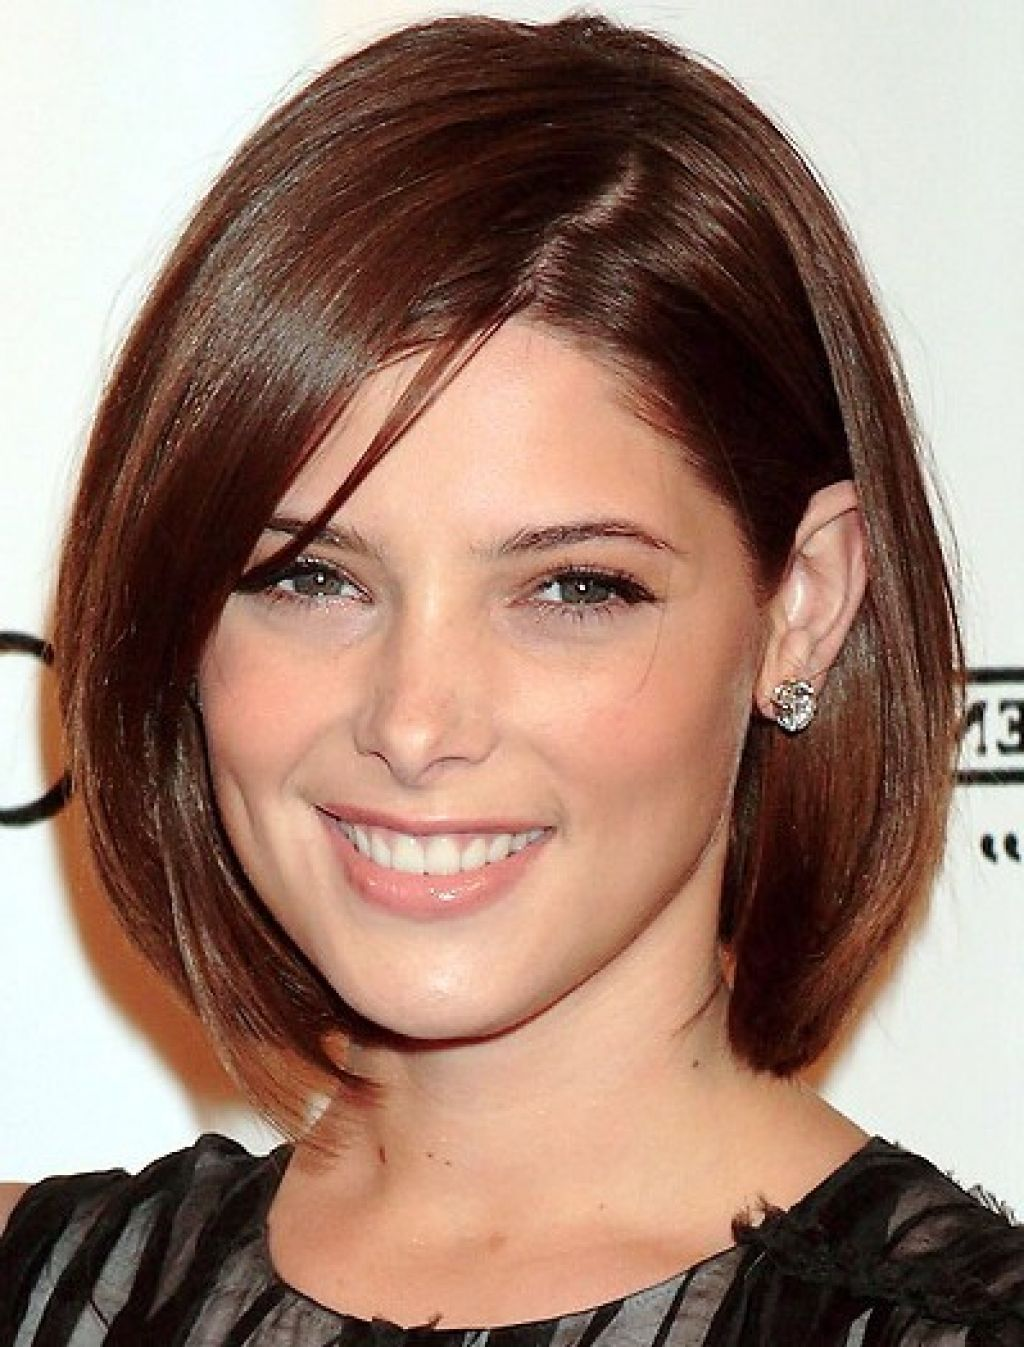 Chin Length Hairstyles For Thin Hair Long Faces Round Faces 6 Jpg 1024 1347 Bob Haircut For Fine Hair Chin Length Hair Medium Hair Styles